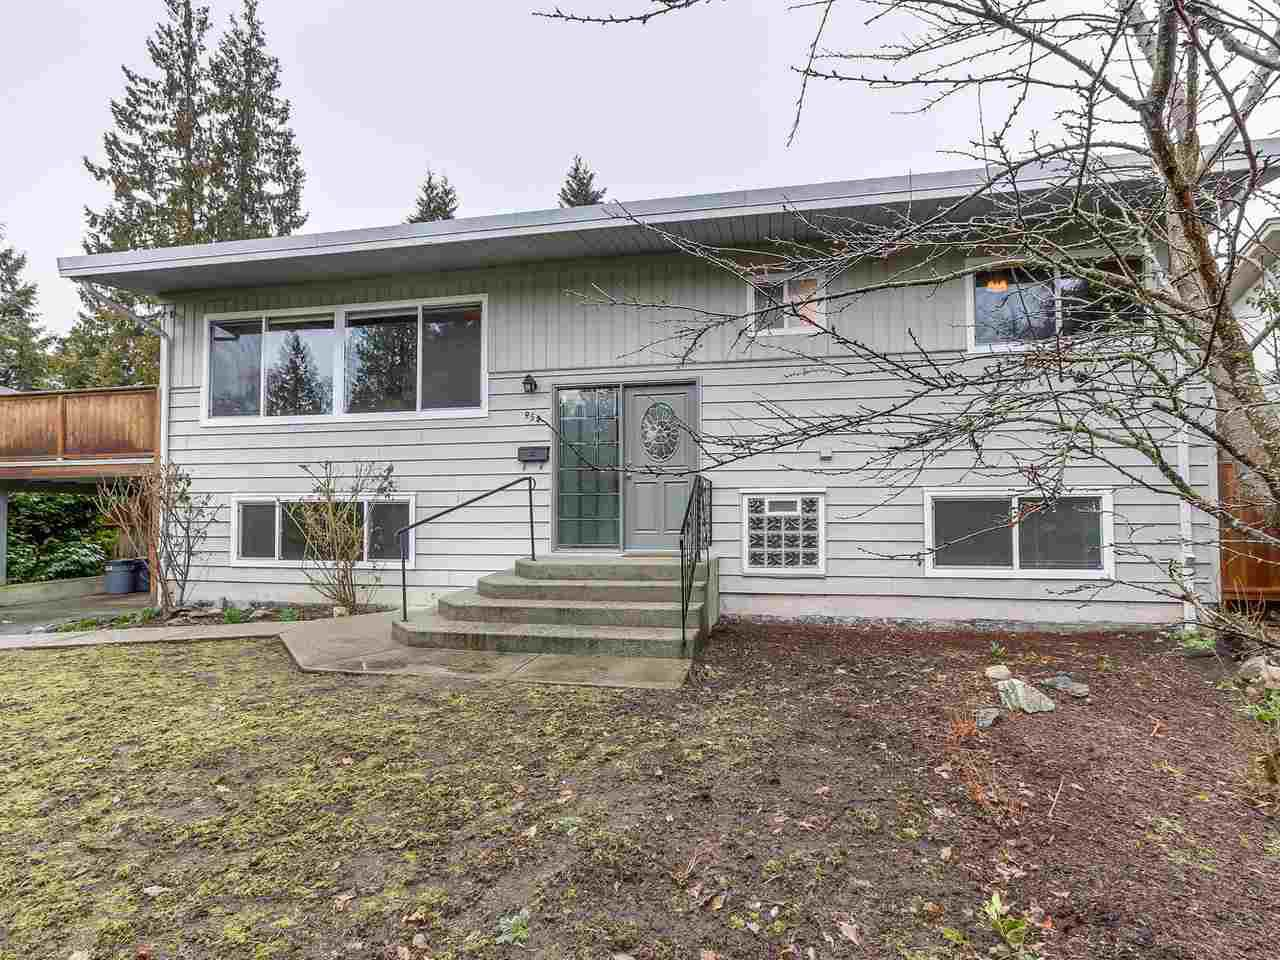 Main Photo: 954 GLENORA Avenue in North Vancouver: Edgemont House for sale : MLS®# R2143724